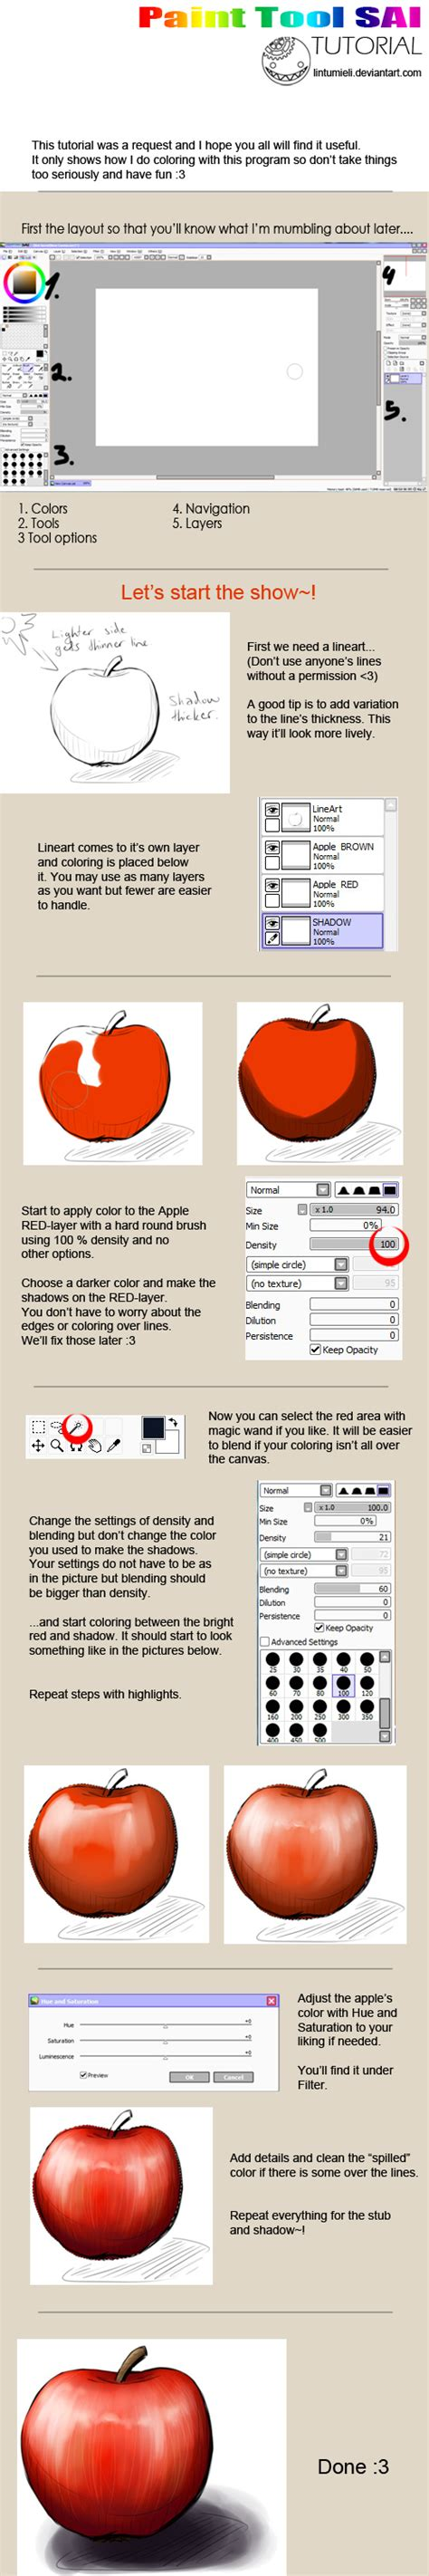 digital tutorial paint tool sai paint tool sai coloring tutorial by lintumieli on deviantart